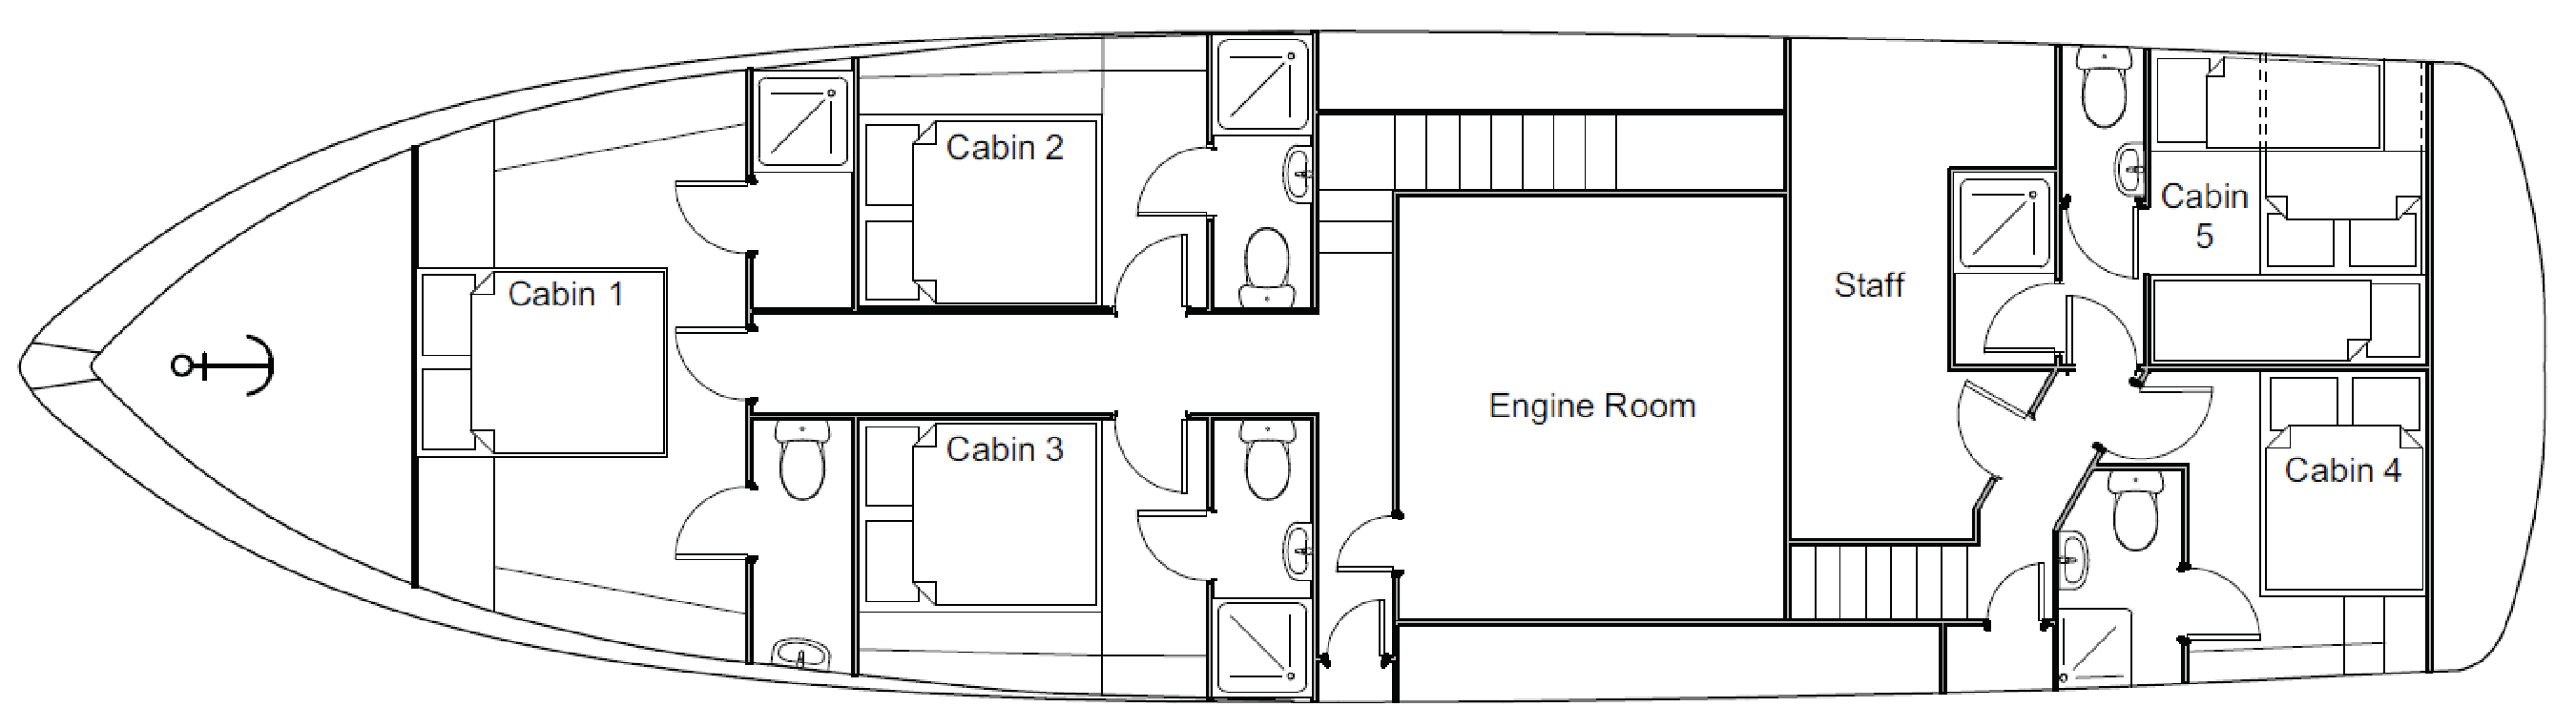 Lower deck floor plan of the MV Southern Secret showing the layout of its five cabins and ensuites.